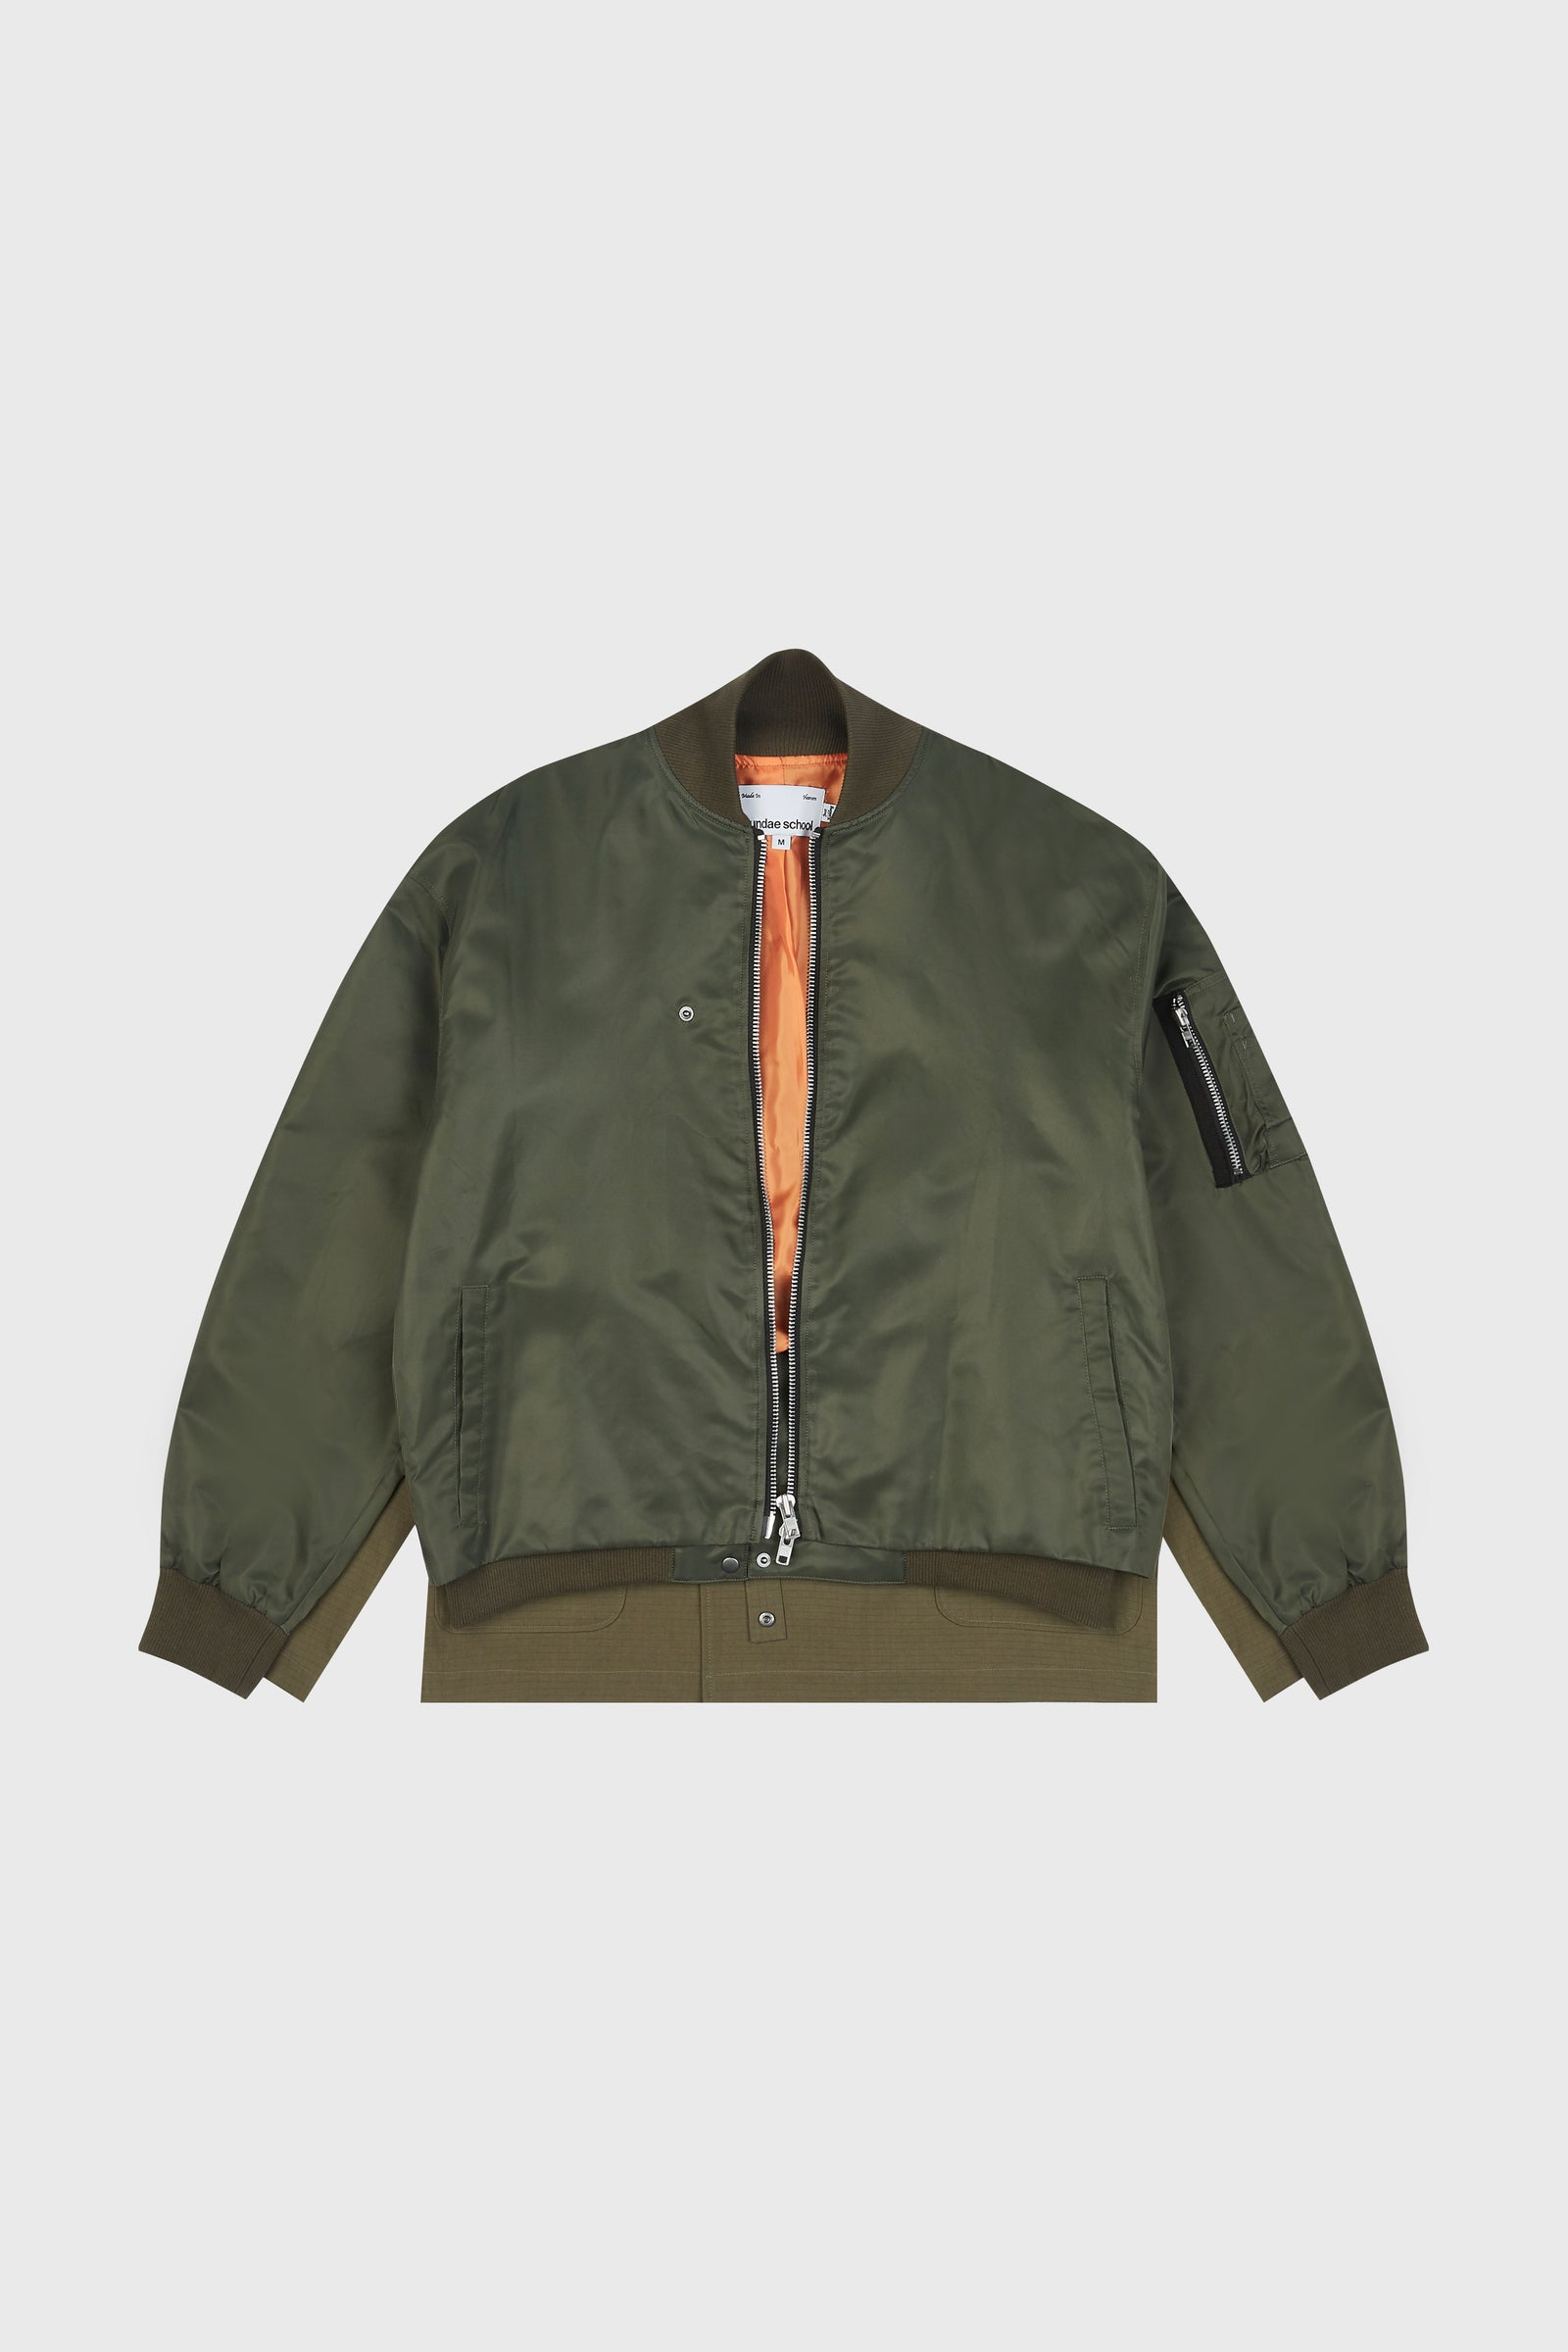 Photo of Army Green Double Layered Jeogori Bomber Jacket, number 10